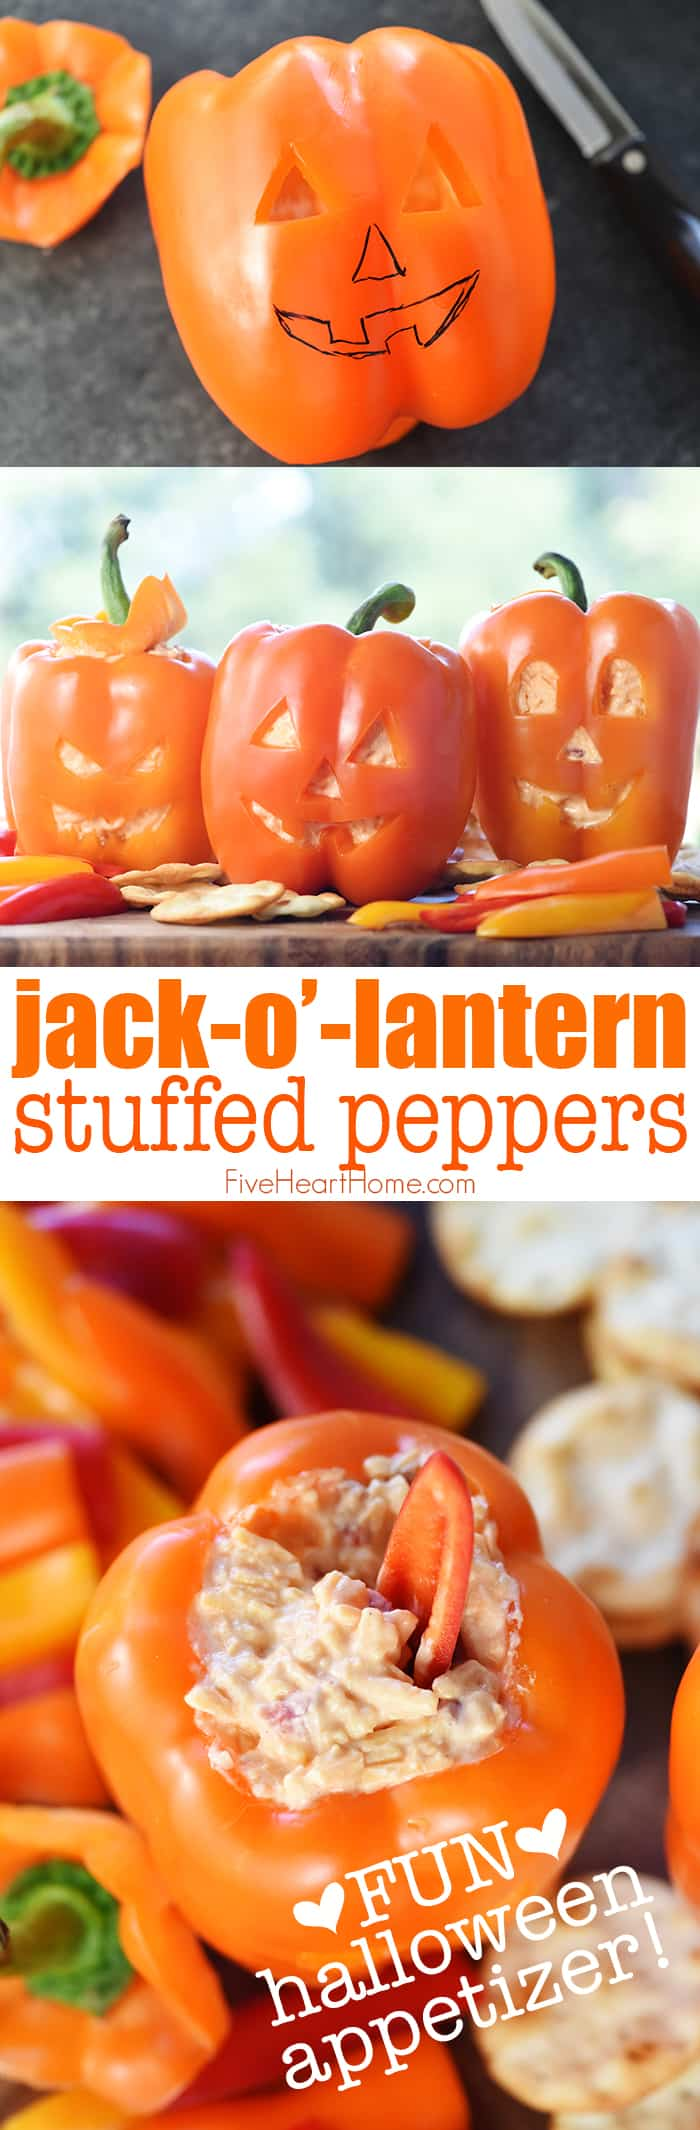 Jack-o'-Lantern Stuffed Peppers ~ as simple as carving orange bell peppers and filling with pimento cheese dip for a fun and festive Halloween appetizer! | FiveHeartHome.com